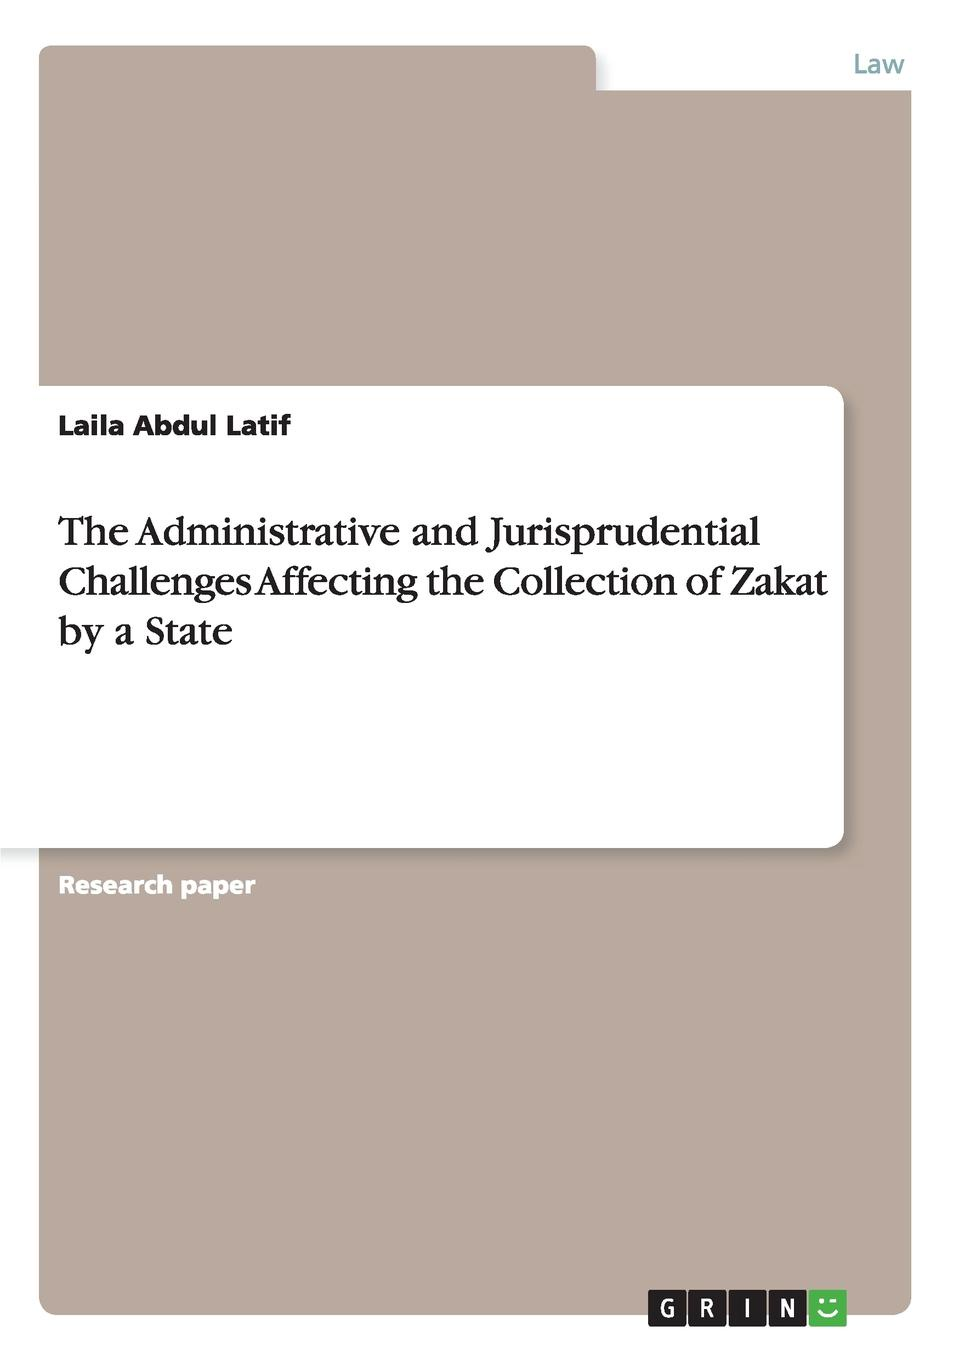 Laila Abdul Latif The Administrative and Jurisprudential Challenges Affecting the Collection of Zakat by a State printio zakat